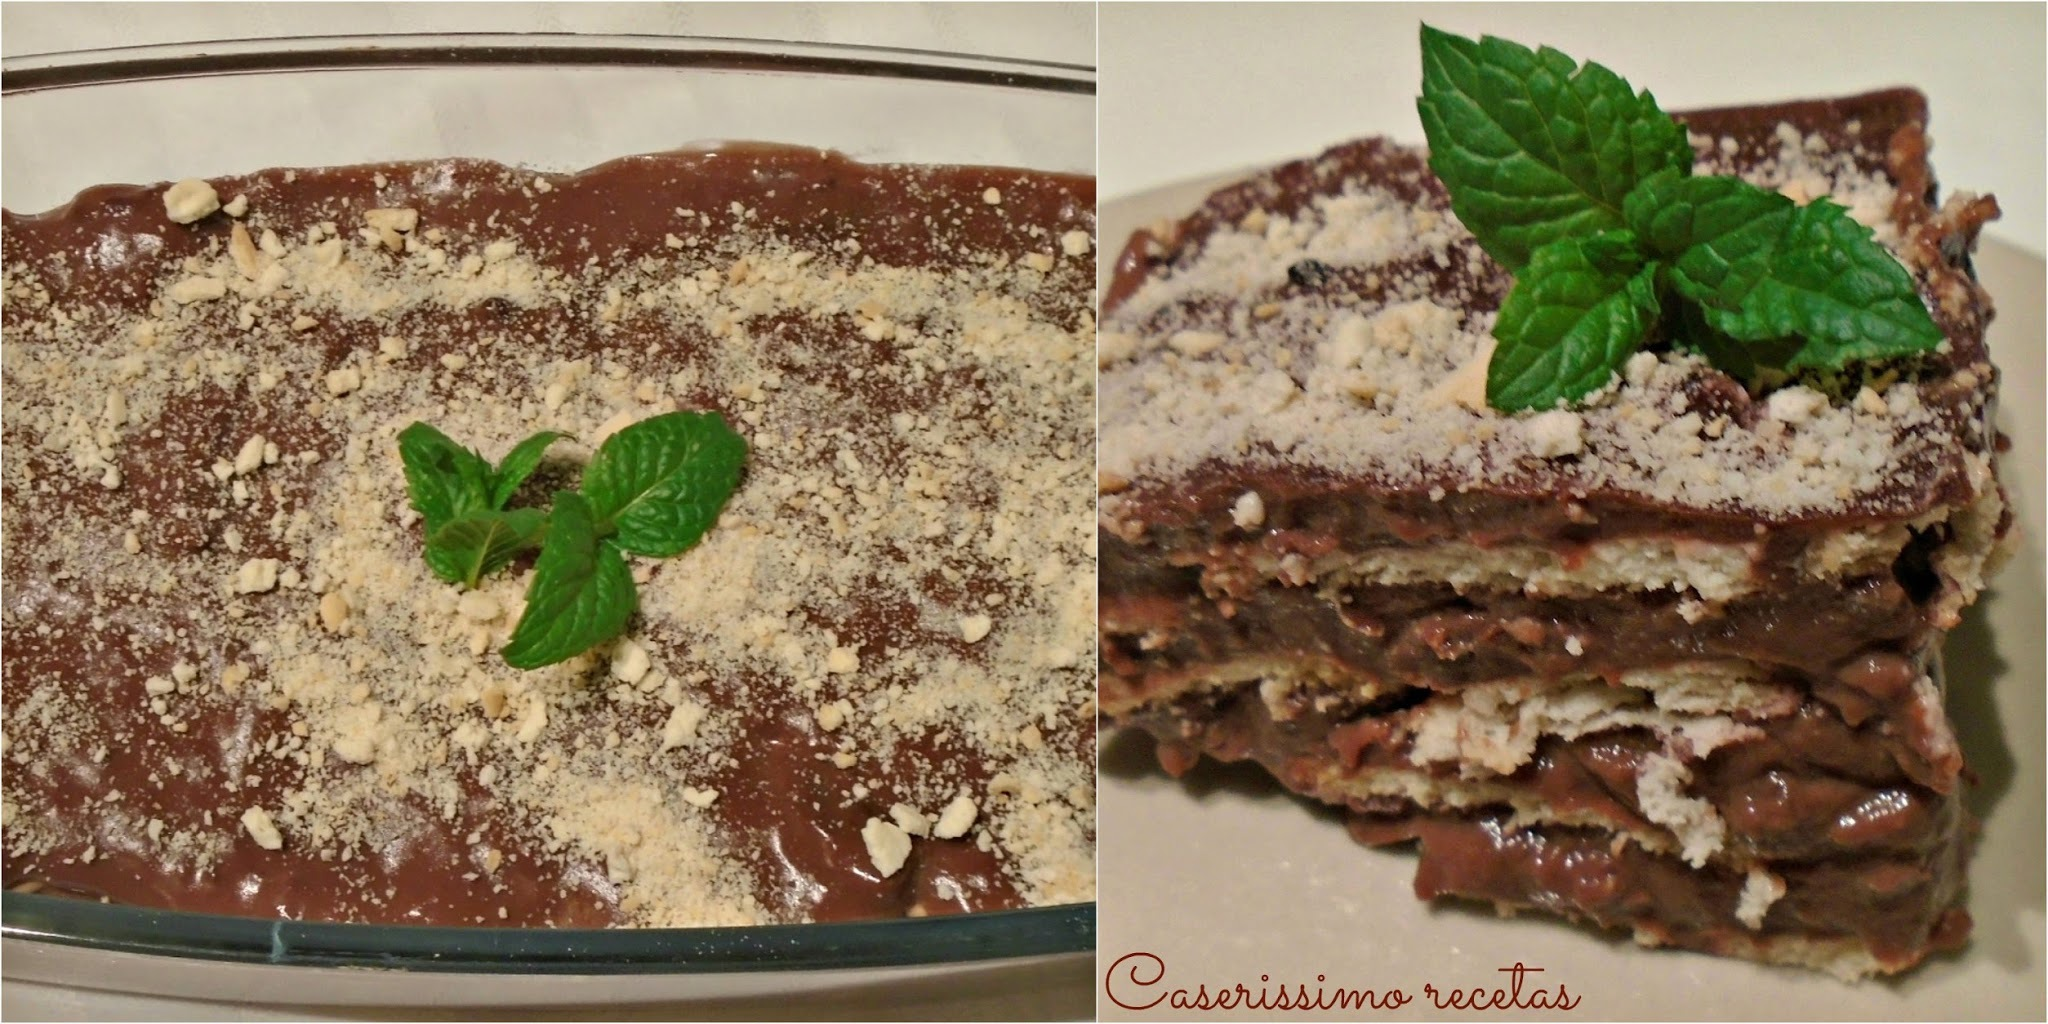 POSTRE LIGHT DE CREMA DE CHOCOLATE Y GALLETITAS 151 kcal.